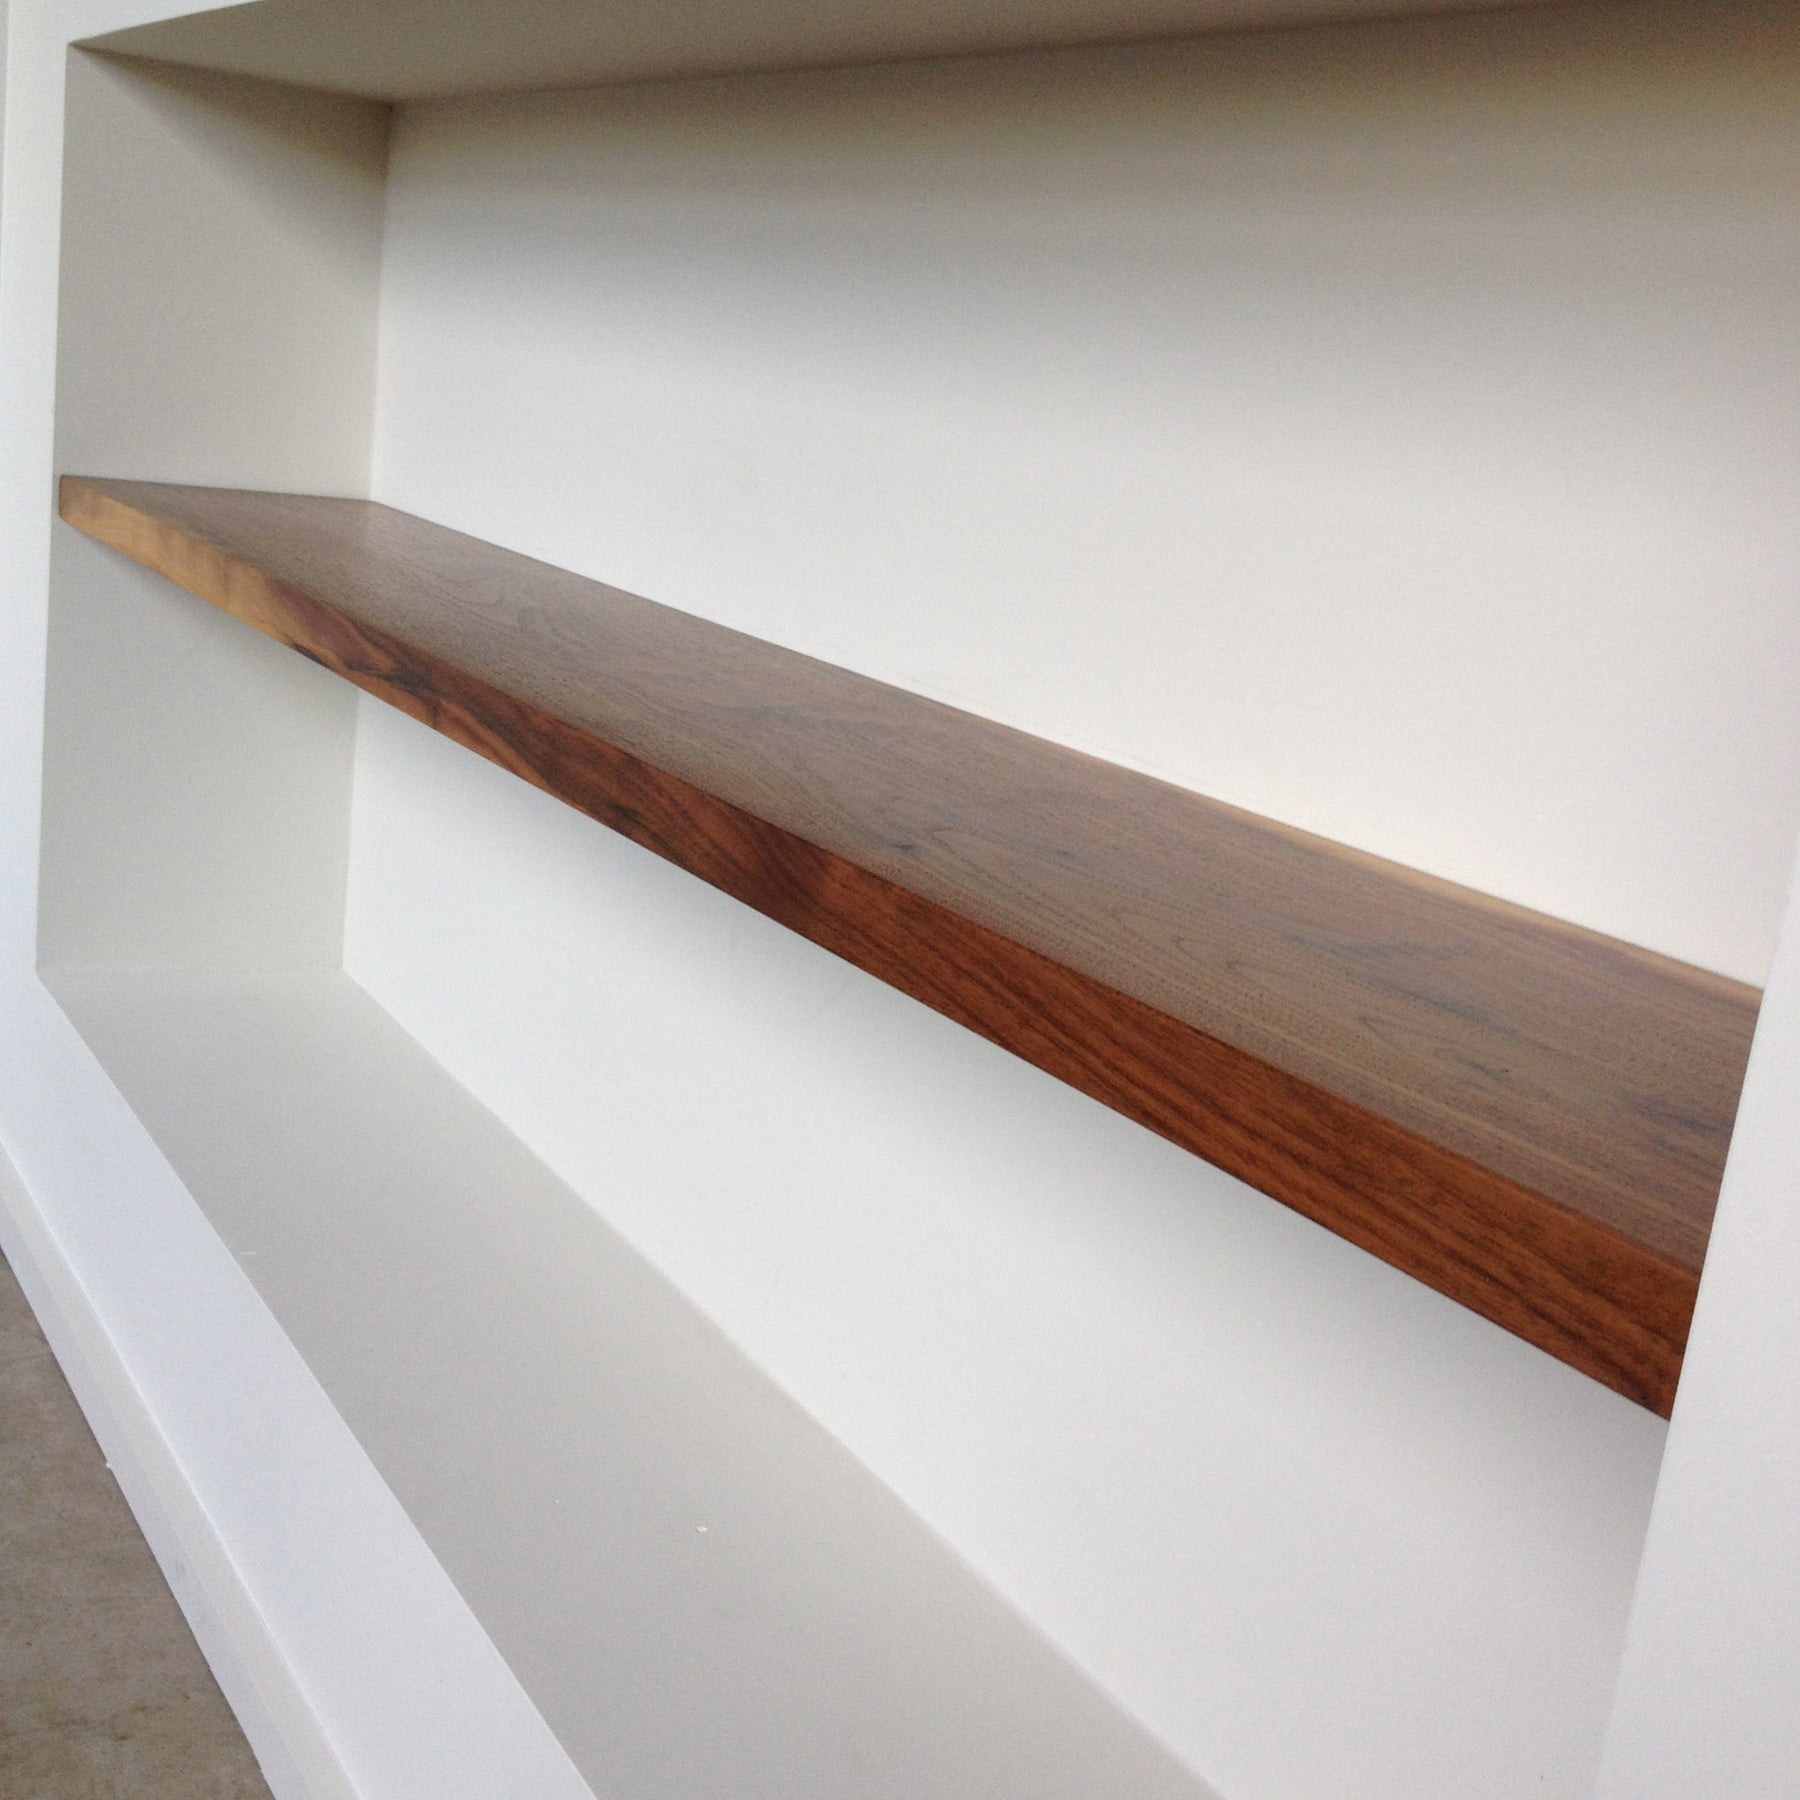 SHELVES AND LEDGES